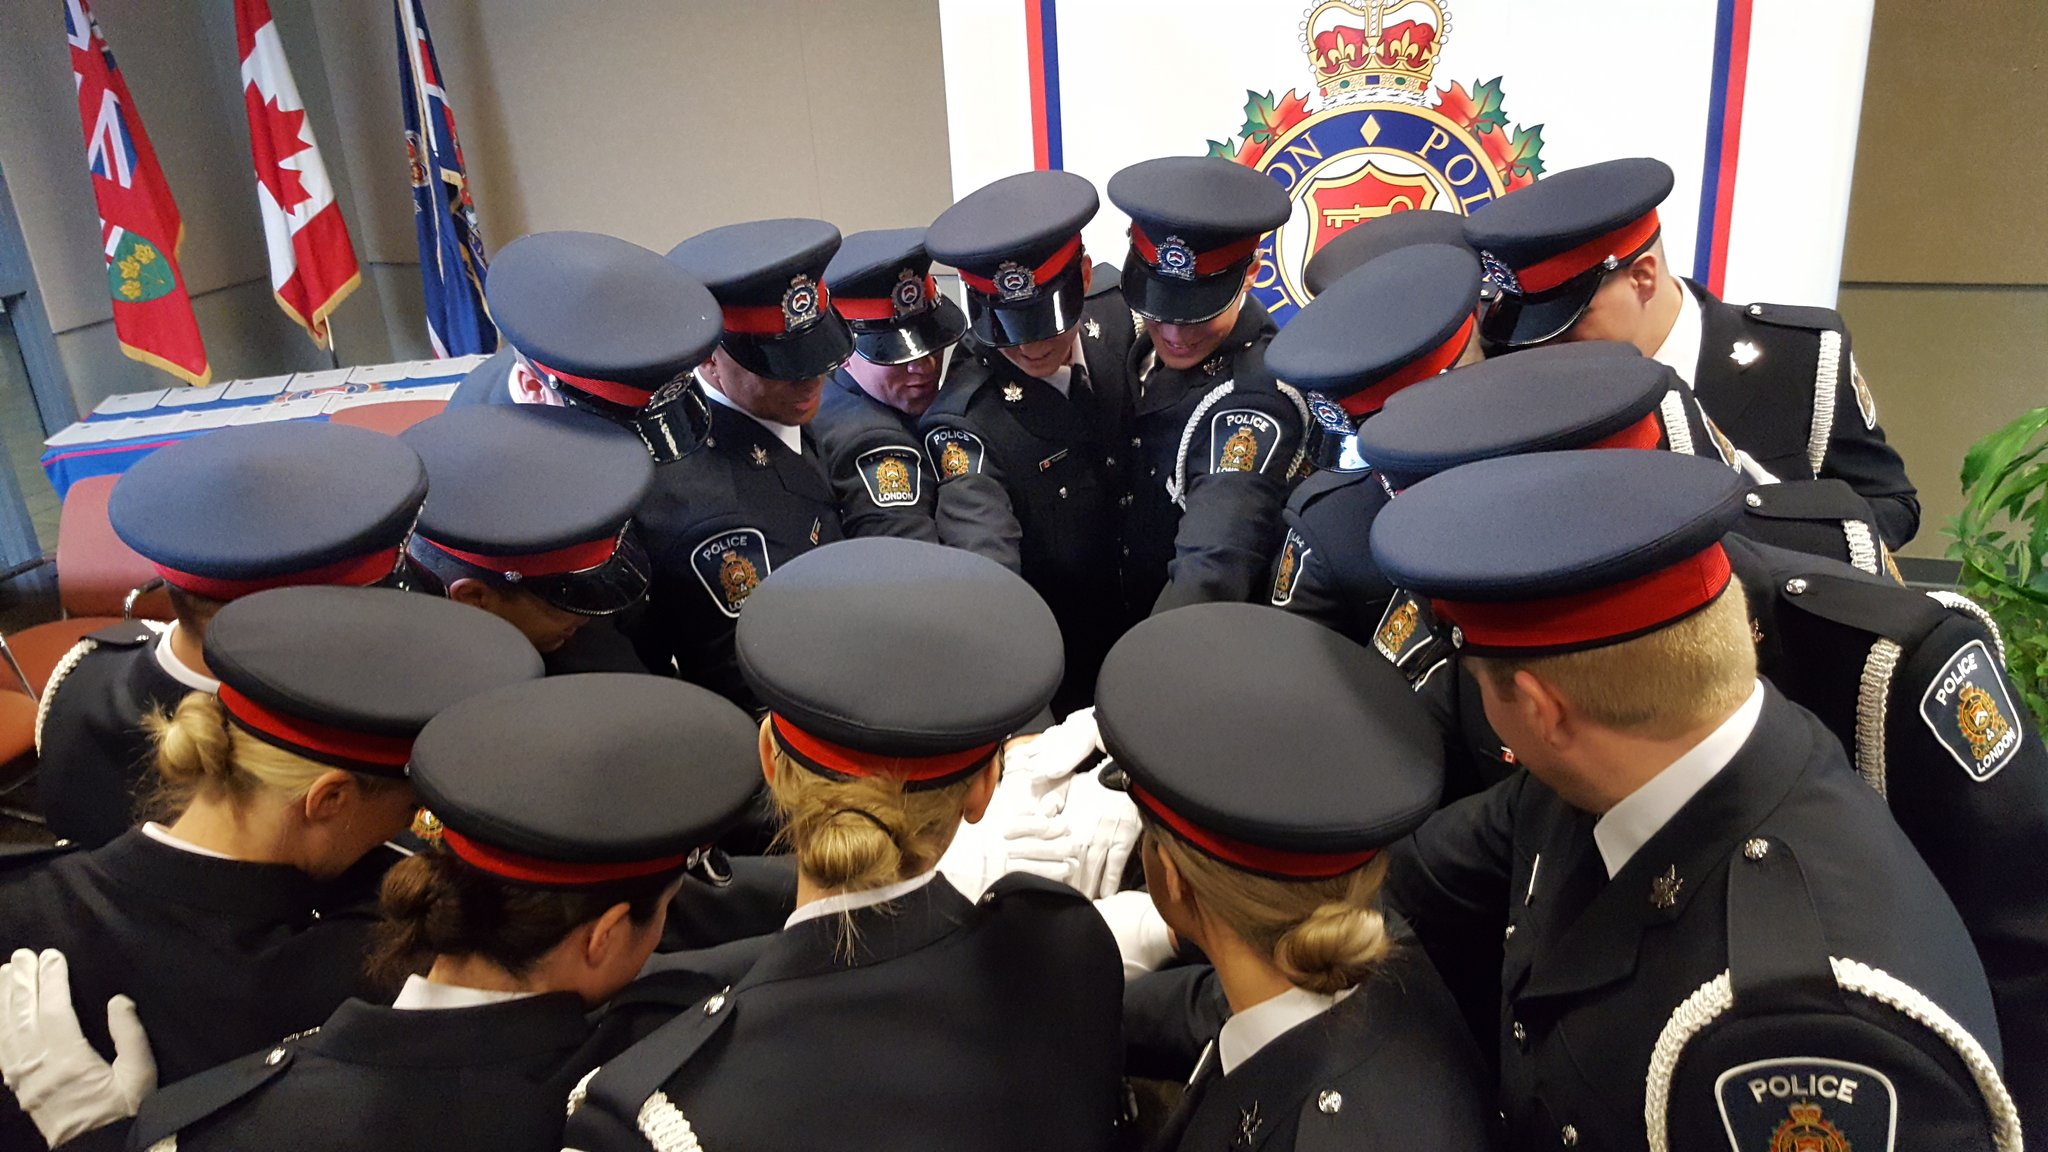 Group of Officers Joining Hands